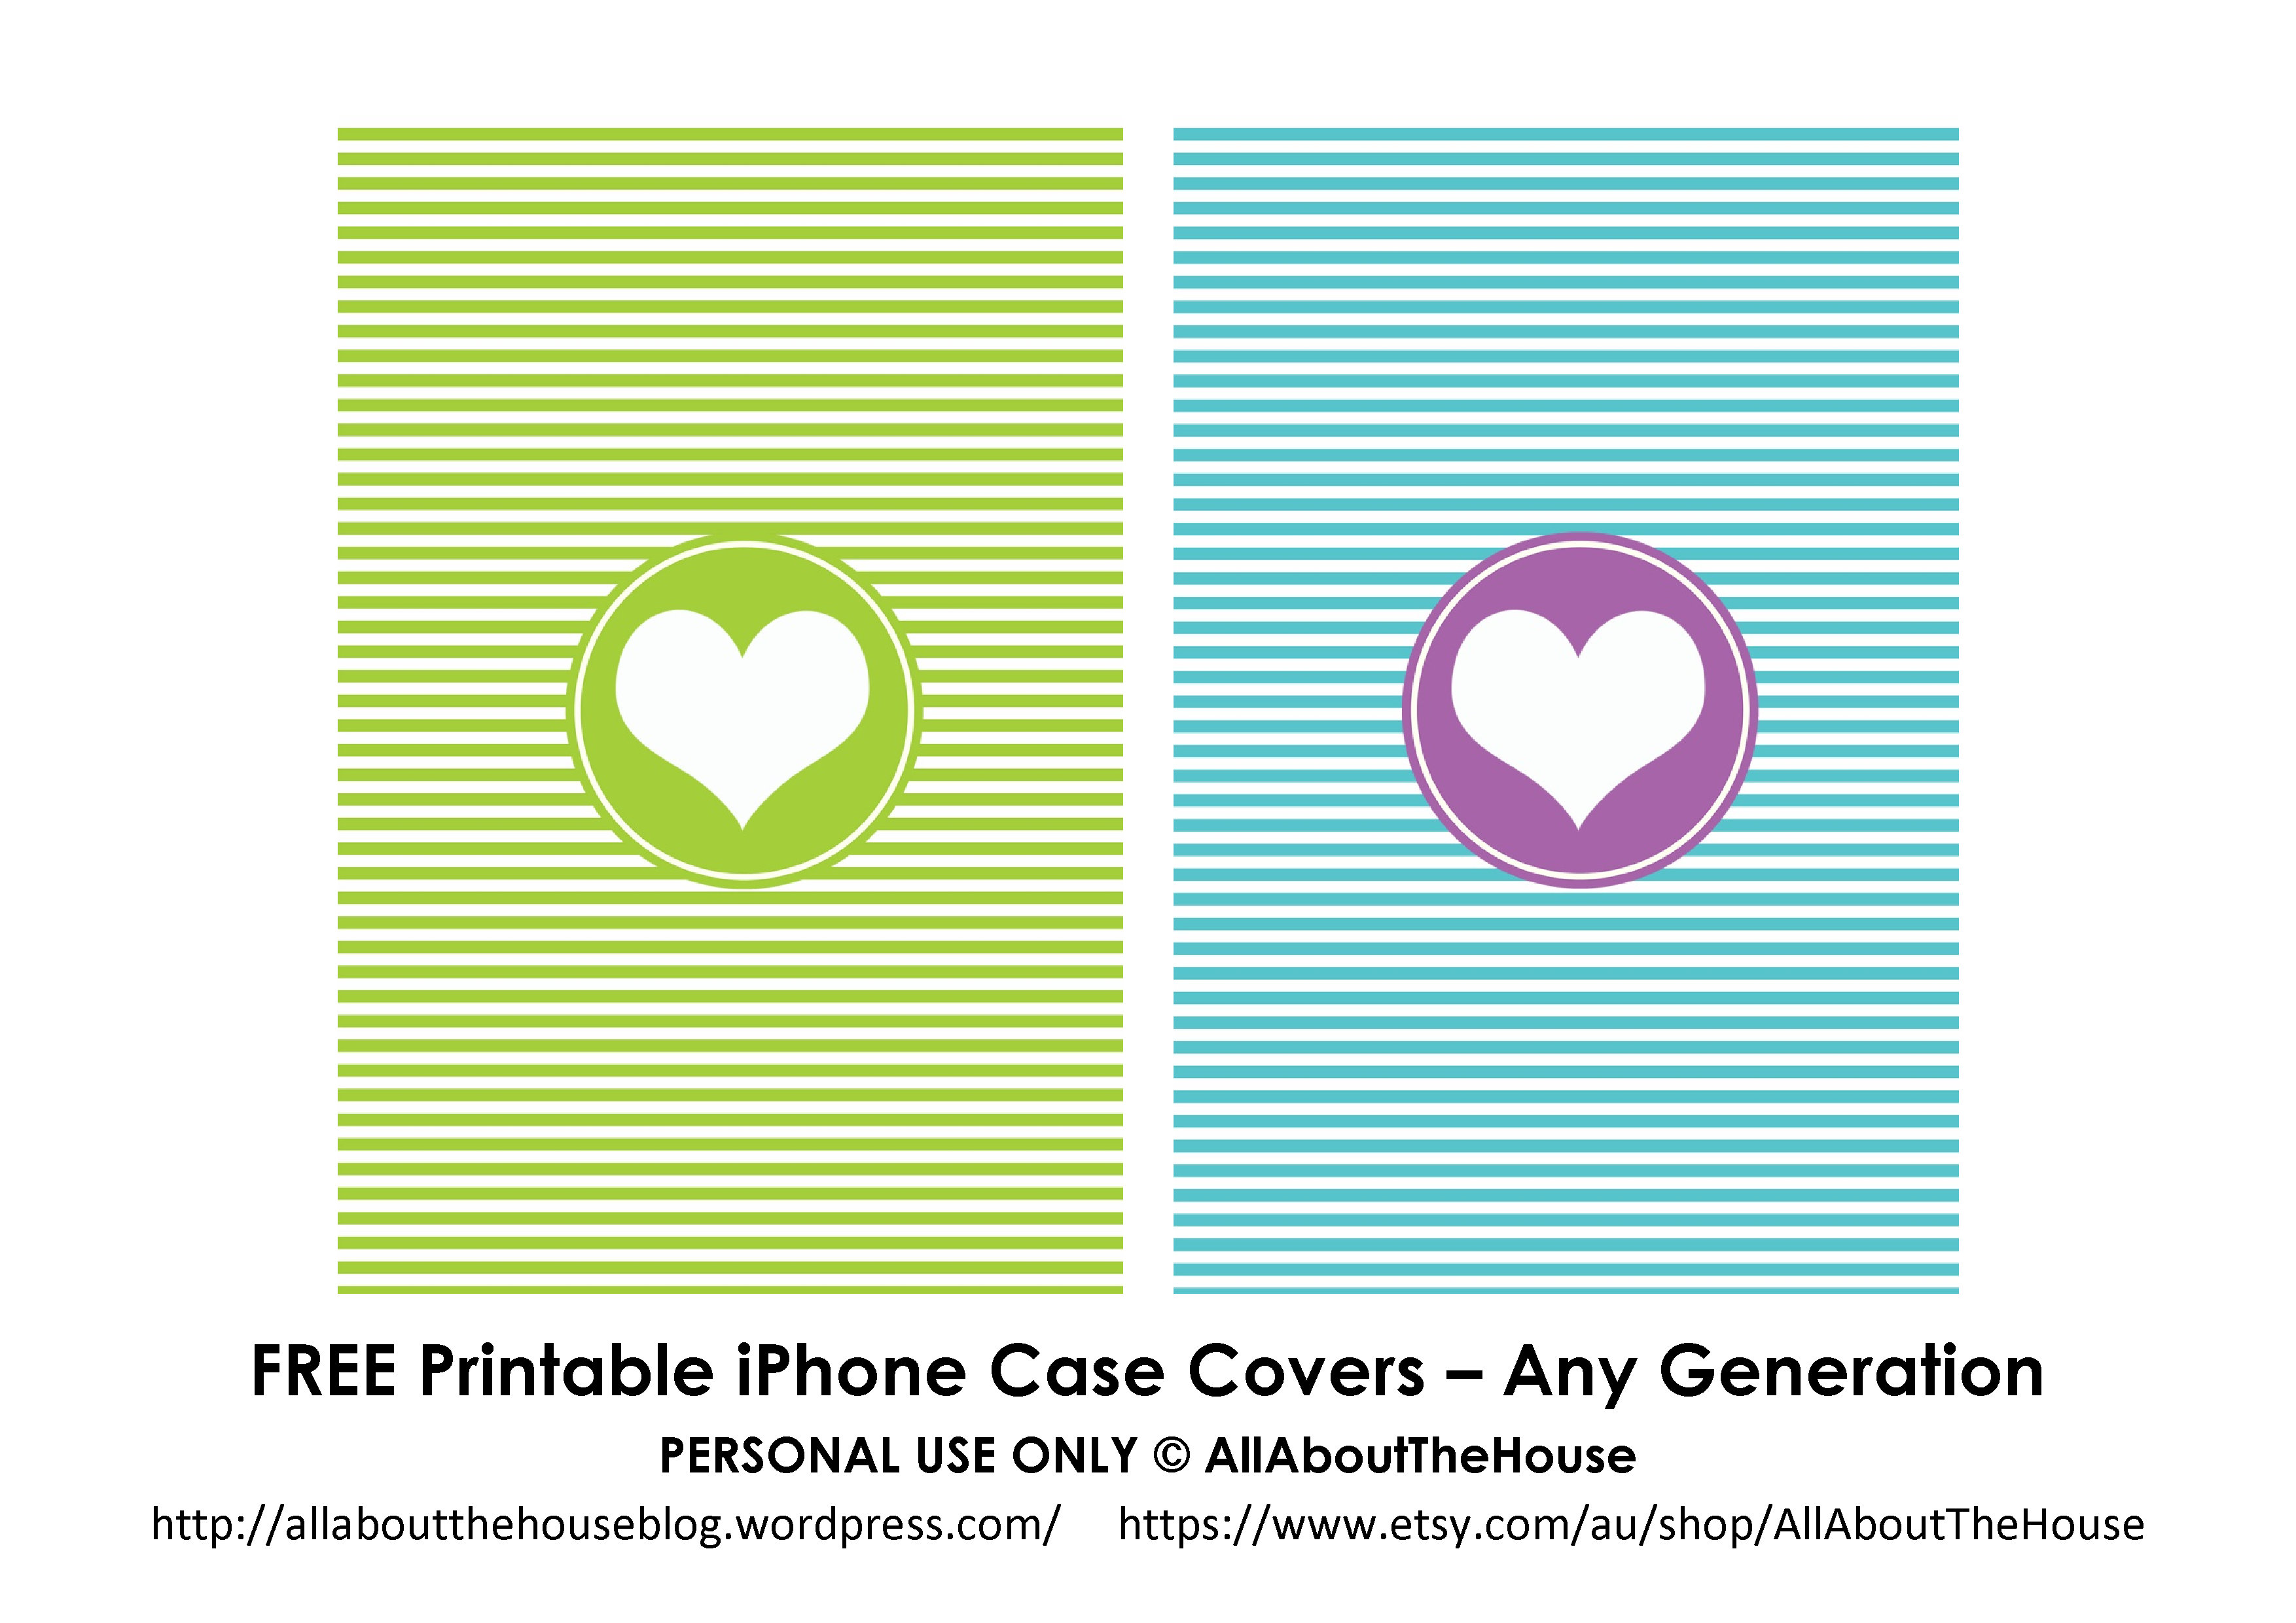 Free iPhone case covers - AllAboutTheHouse